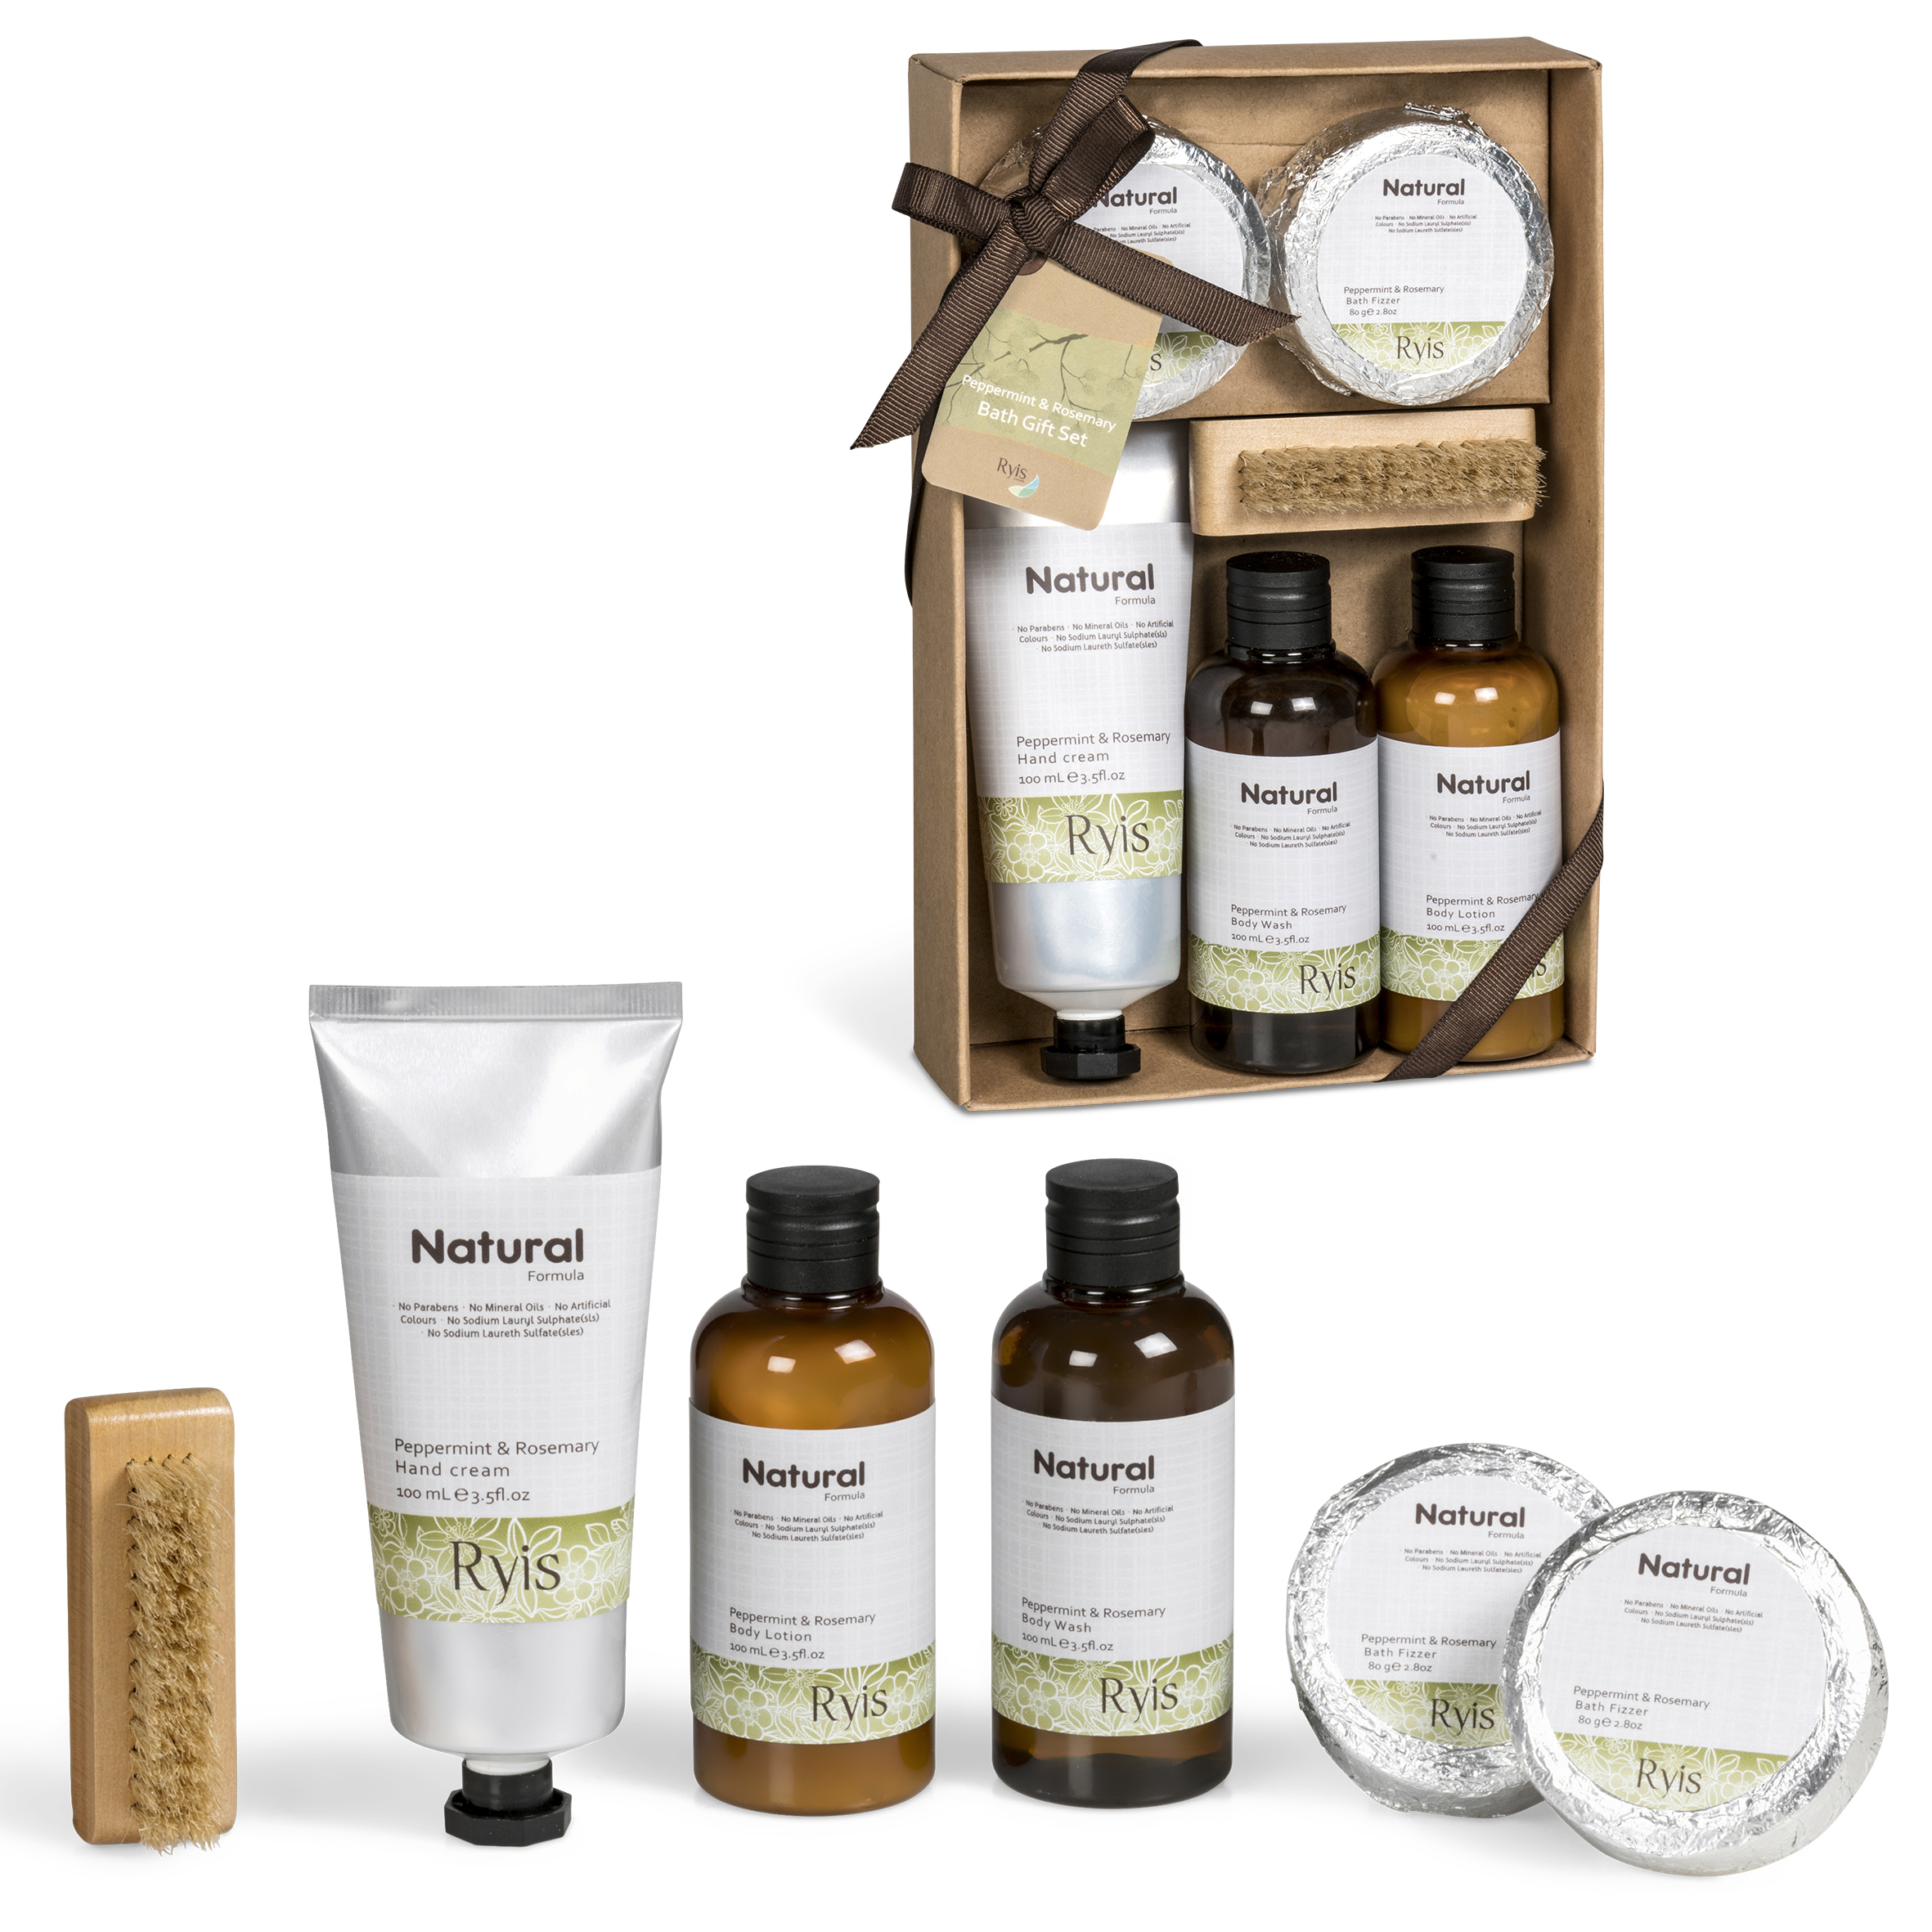 Product: Ryis Peppermint & Rosemary Bath Gift Set